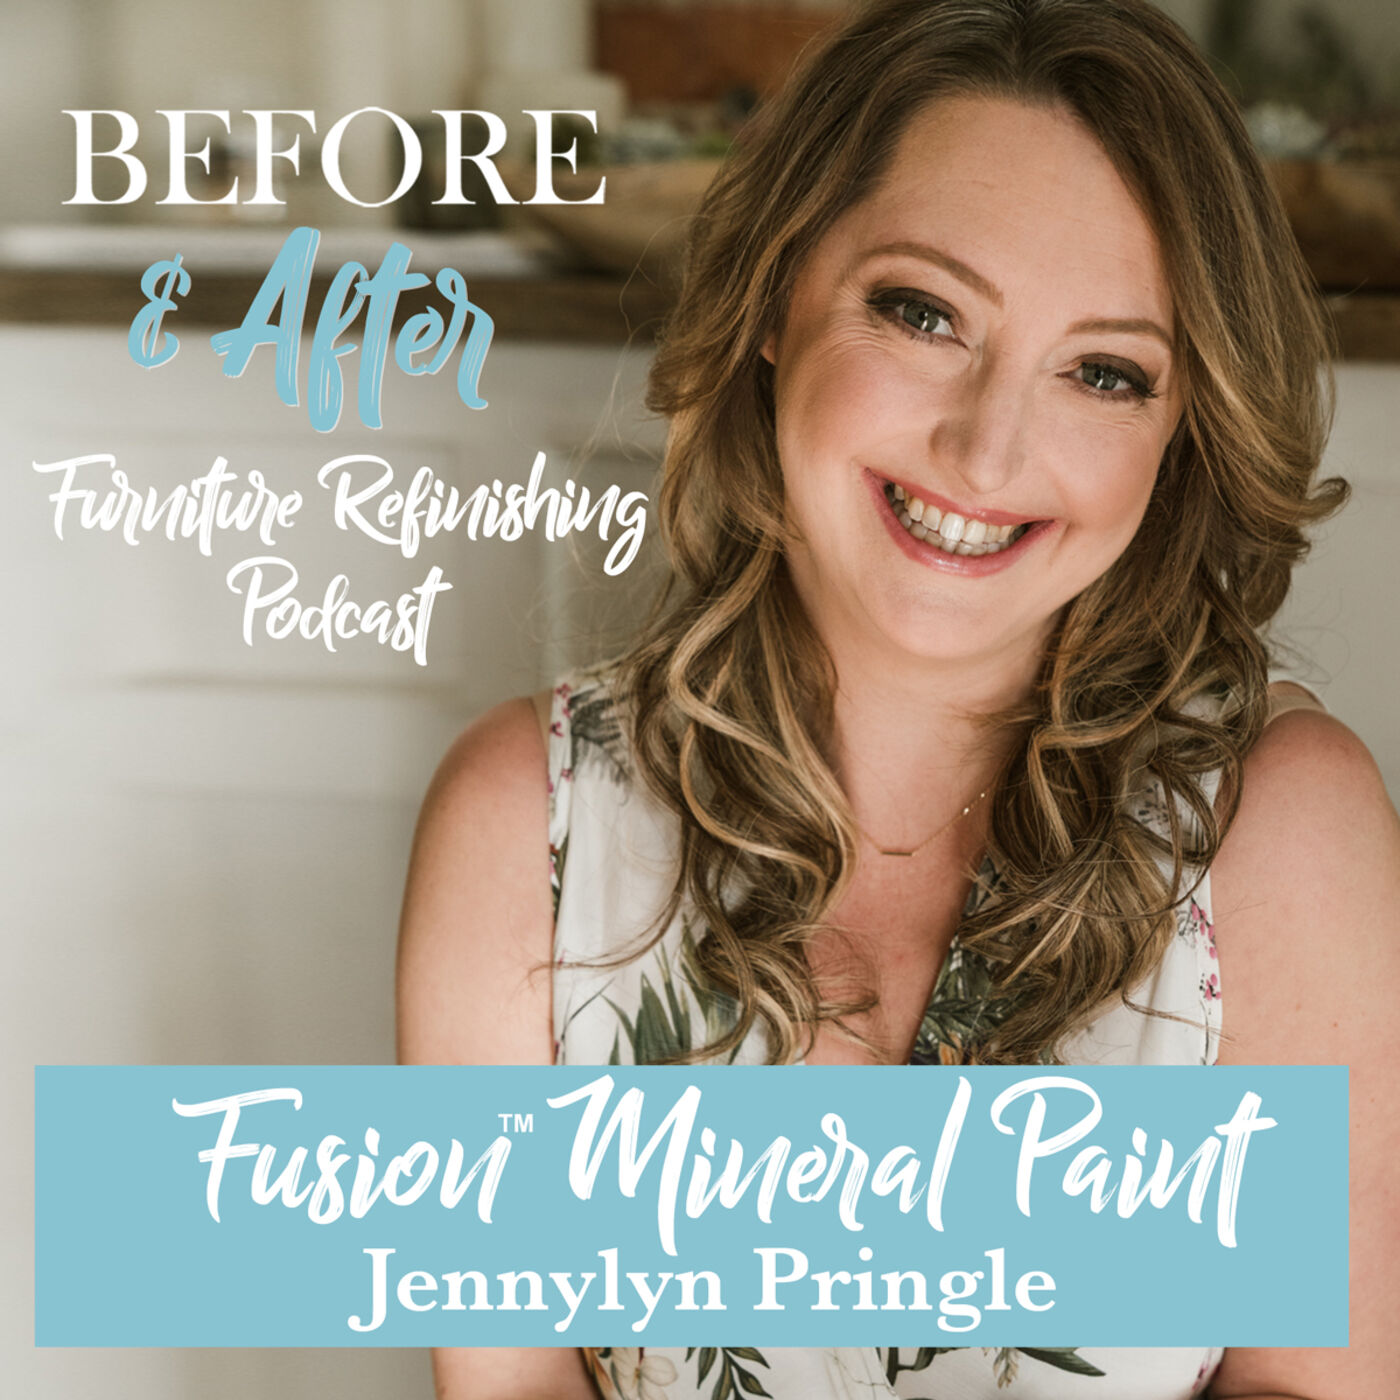 An Interview with Jennylyn Pringle of Fusion Mineral Paint